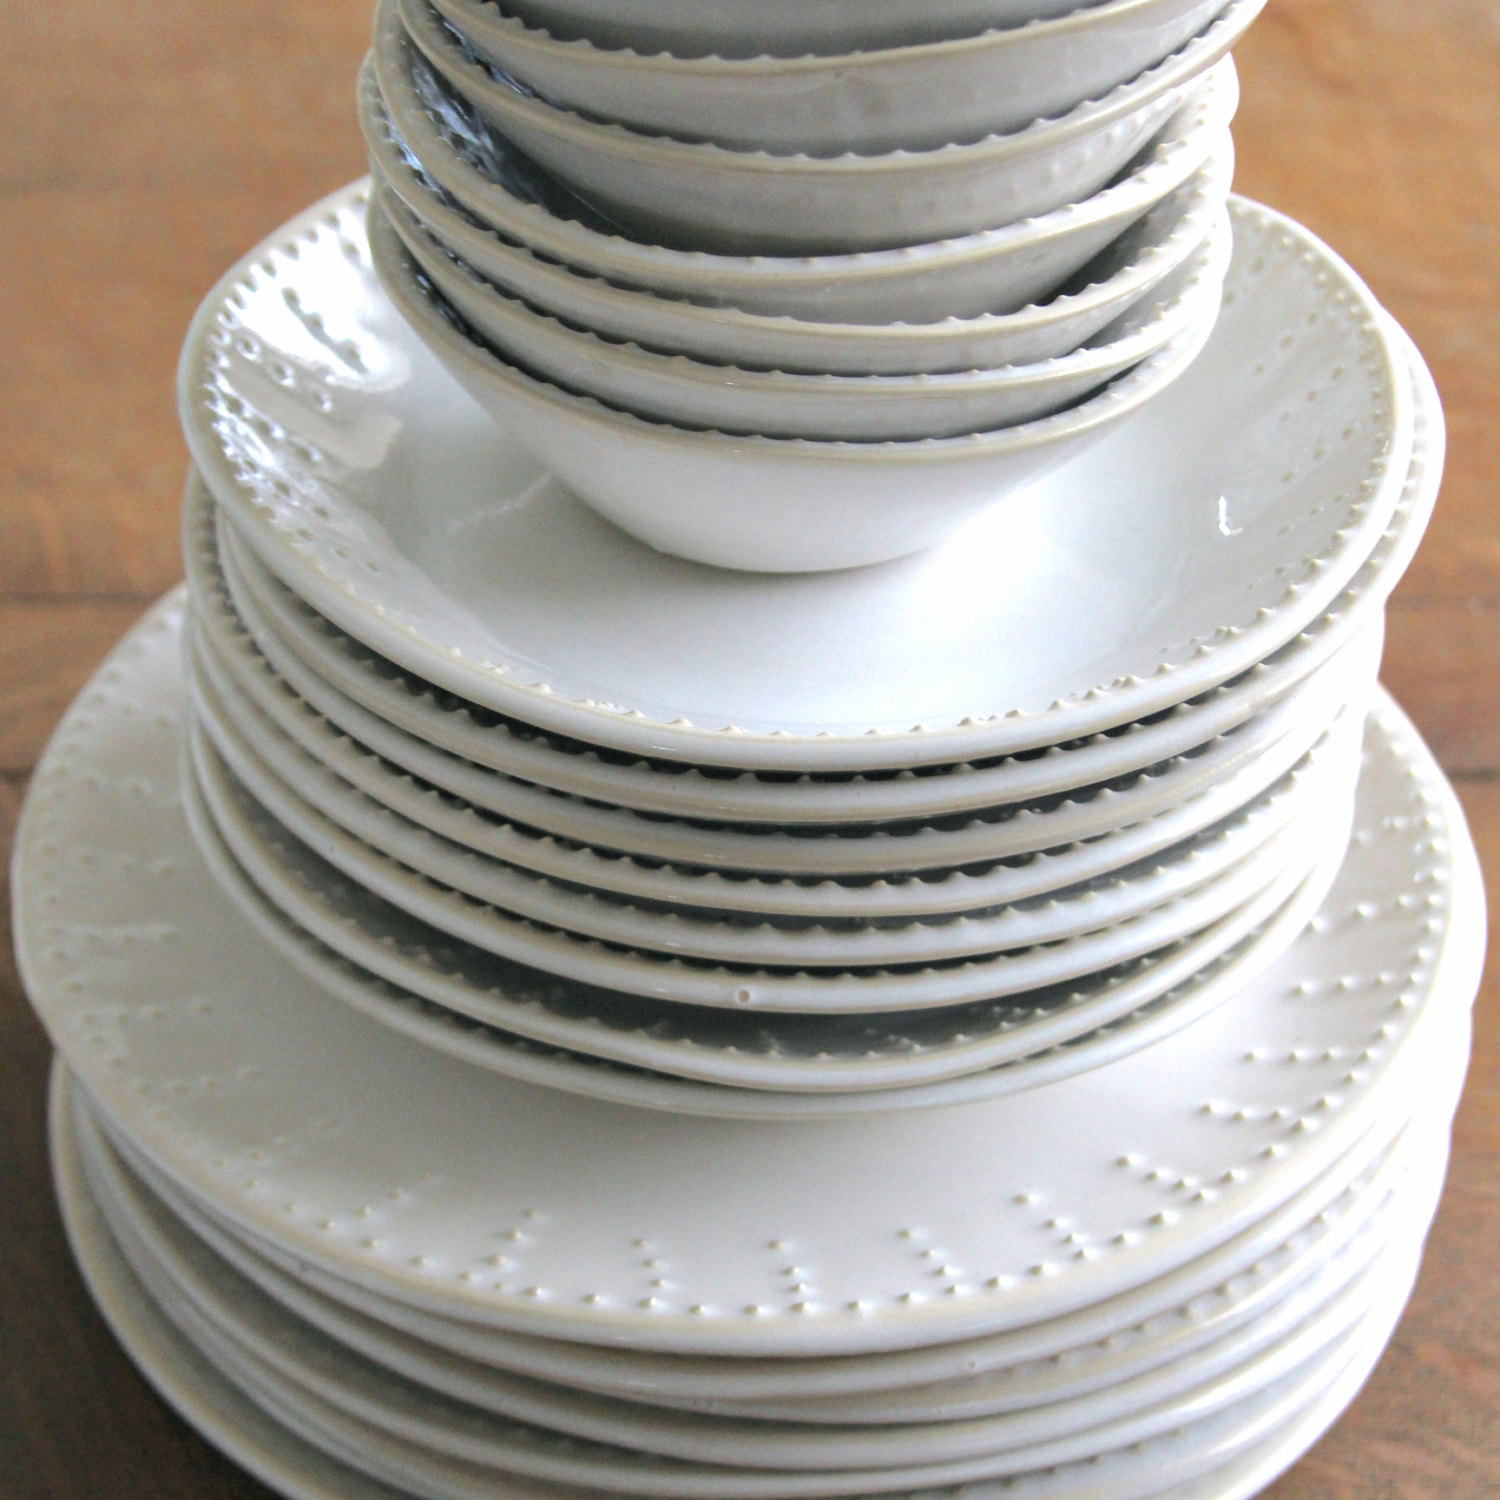 Handmade Dinnerware in Creamy White